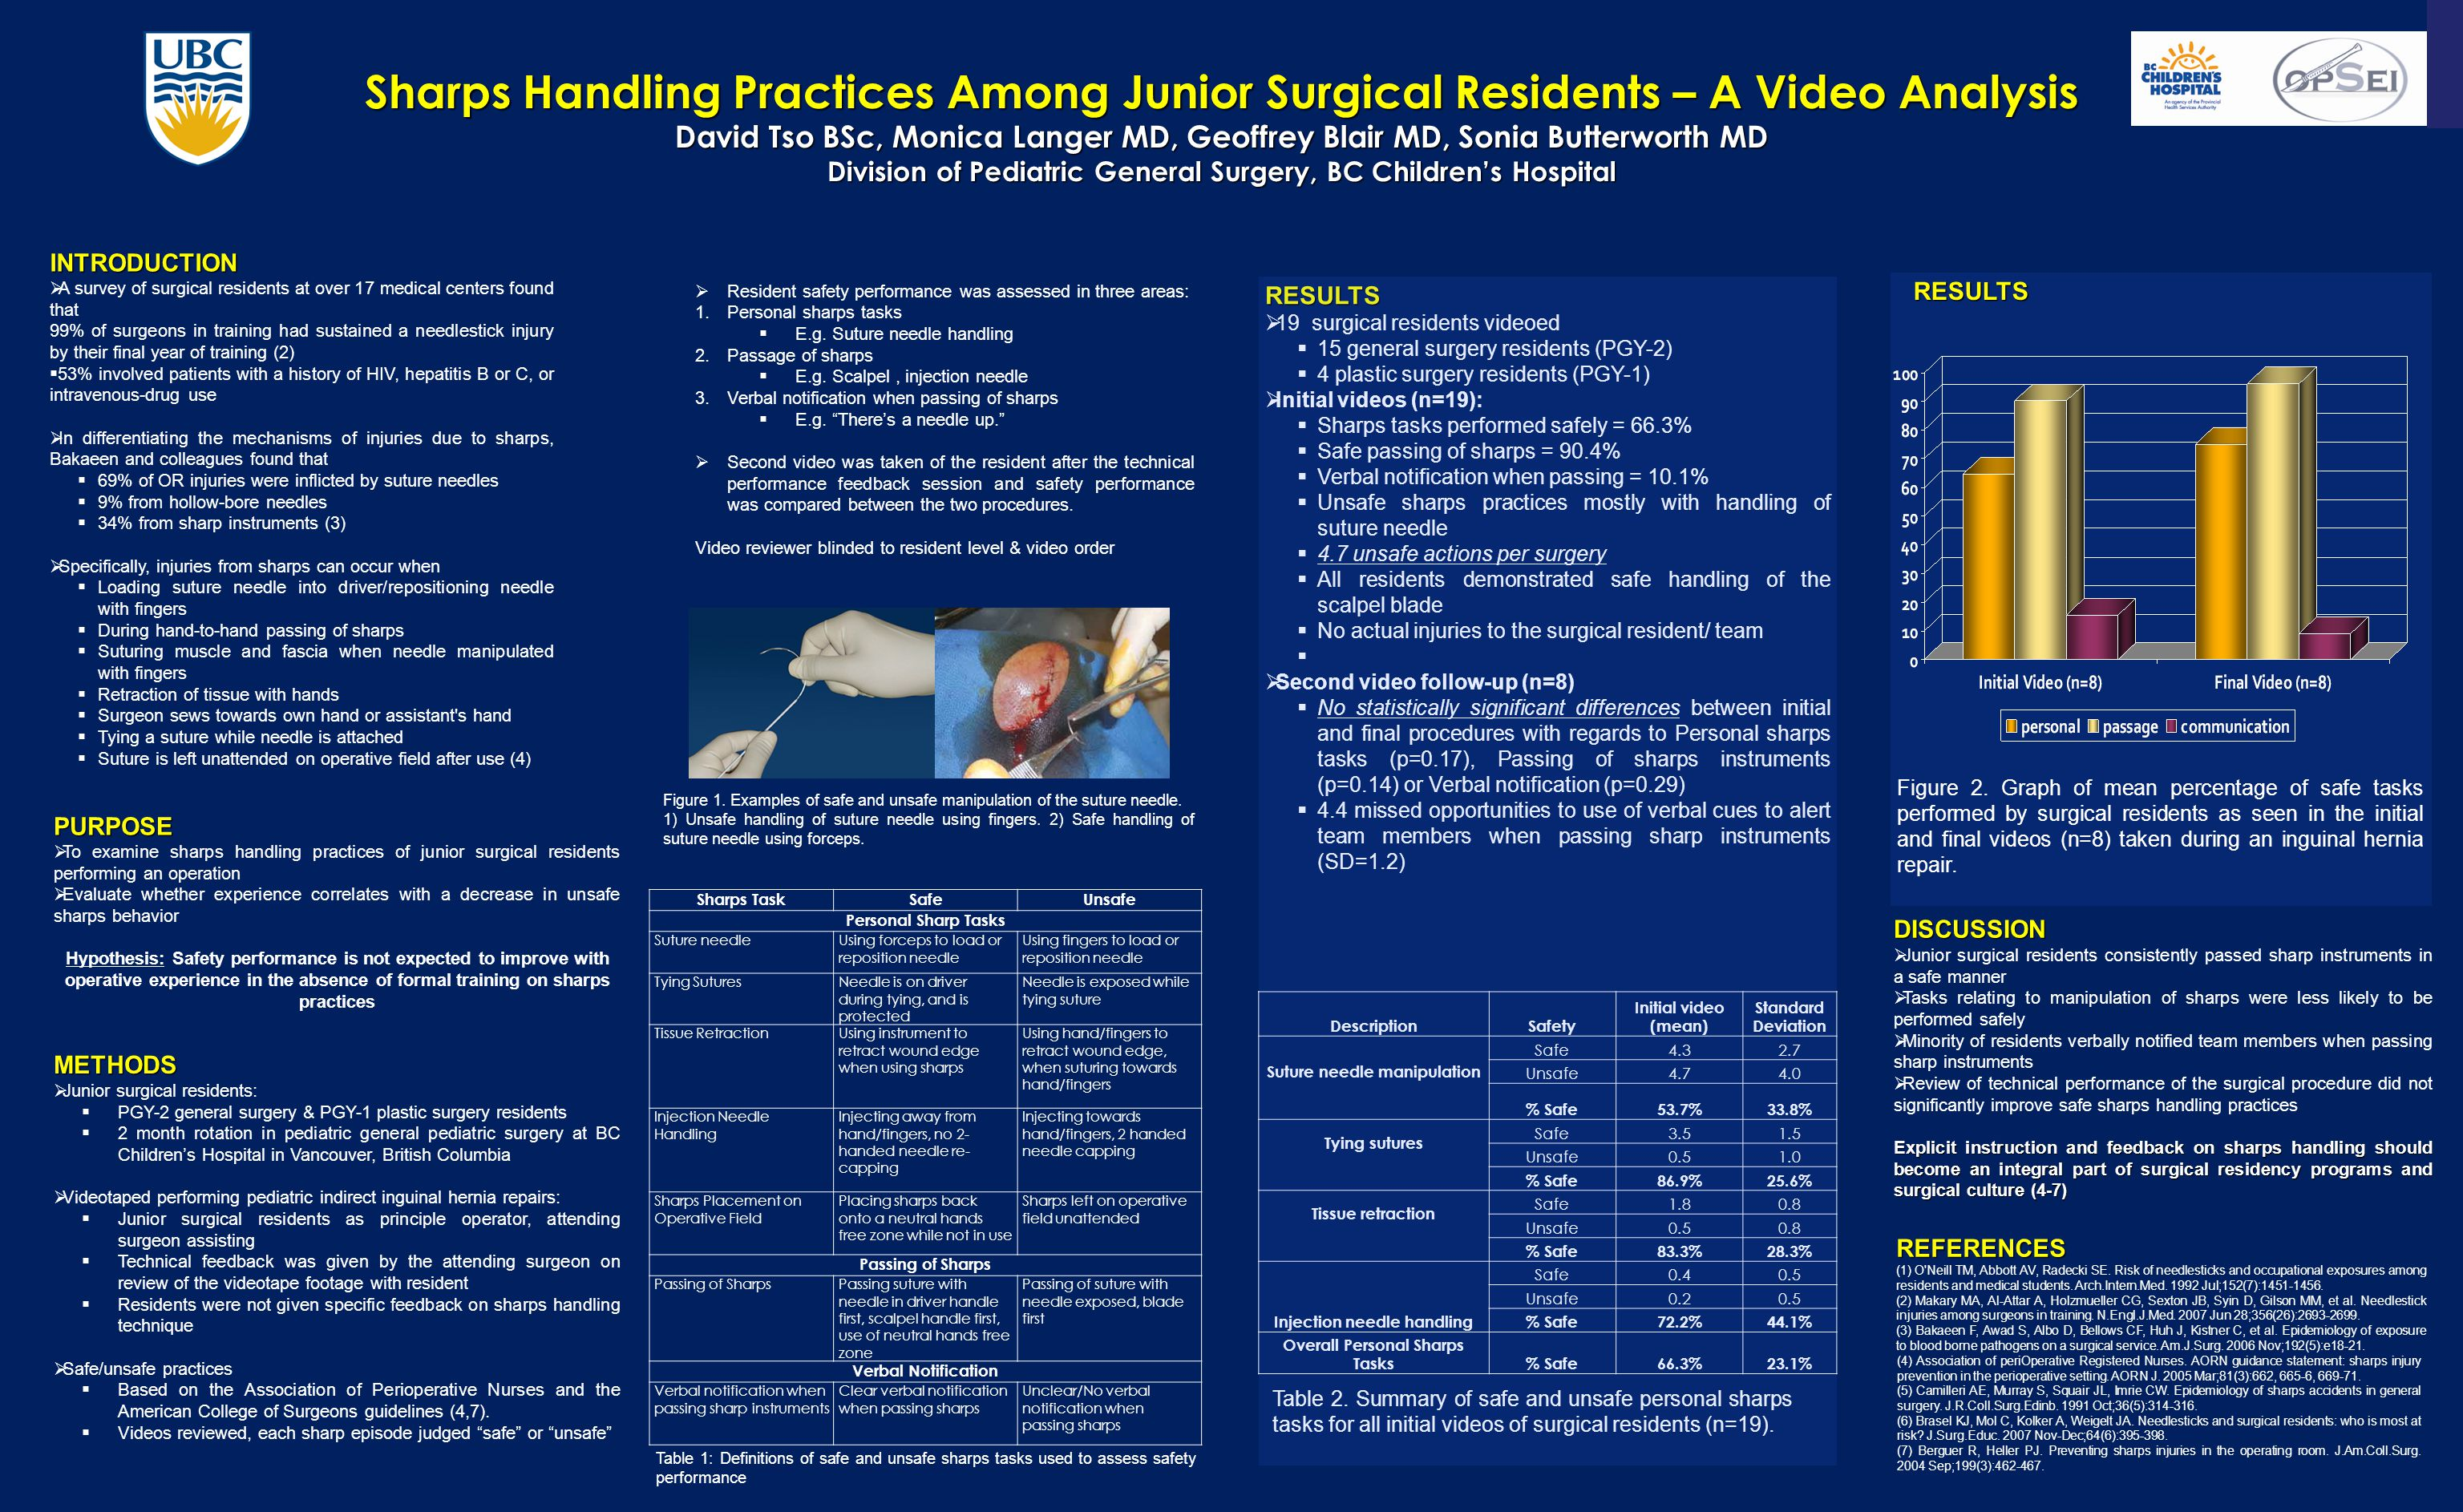 Sharps Handling Practices Among Junior Surgical Residents – A Video Analysis David Tso BSc, Monica Langer MD, Geoffrey Blair MD, Sonia Butterworth MD Division of Pediatric General Surgery, BC Children's Hospital INTRODUCTION  A survey of surgical residents at over 17 medical centers found that 99% of surgeons in training had sustained a needlestick injury by their final year of training (2)  53% involved patients with a history of HIV, hepatitis B or C, or intravenous-drug use  In differentiating the mechanisms of injuries due to sharps, Bakaeen and colleagues found that  69% of OR injuries were inflicted by suture needles  9% from hollow-bore needles  34% from sharp instruments (3)  Specifically, injuries from sharps can occur when  Loading suture needle into driver/repositioning needle with fingers  During hand-to-hand passing of sharps  Suturing muscle and fascia when needle manipulated with fingers  Retraction of tissue with hands  Surgeon sews towards own hand or assistant s hand  Tying a suture while needle is attached  Suture is left unattended on operative field after use (4) REFERENCES (1) O Neill TM, Abbott AV, Radecki SE.